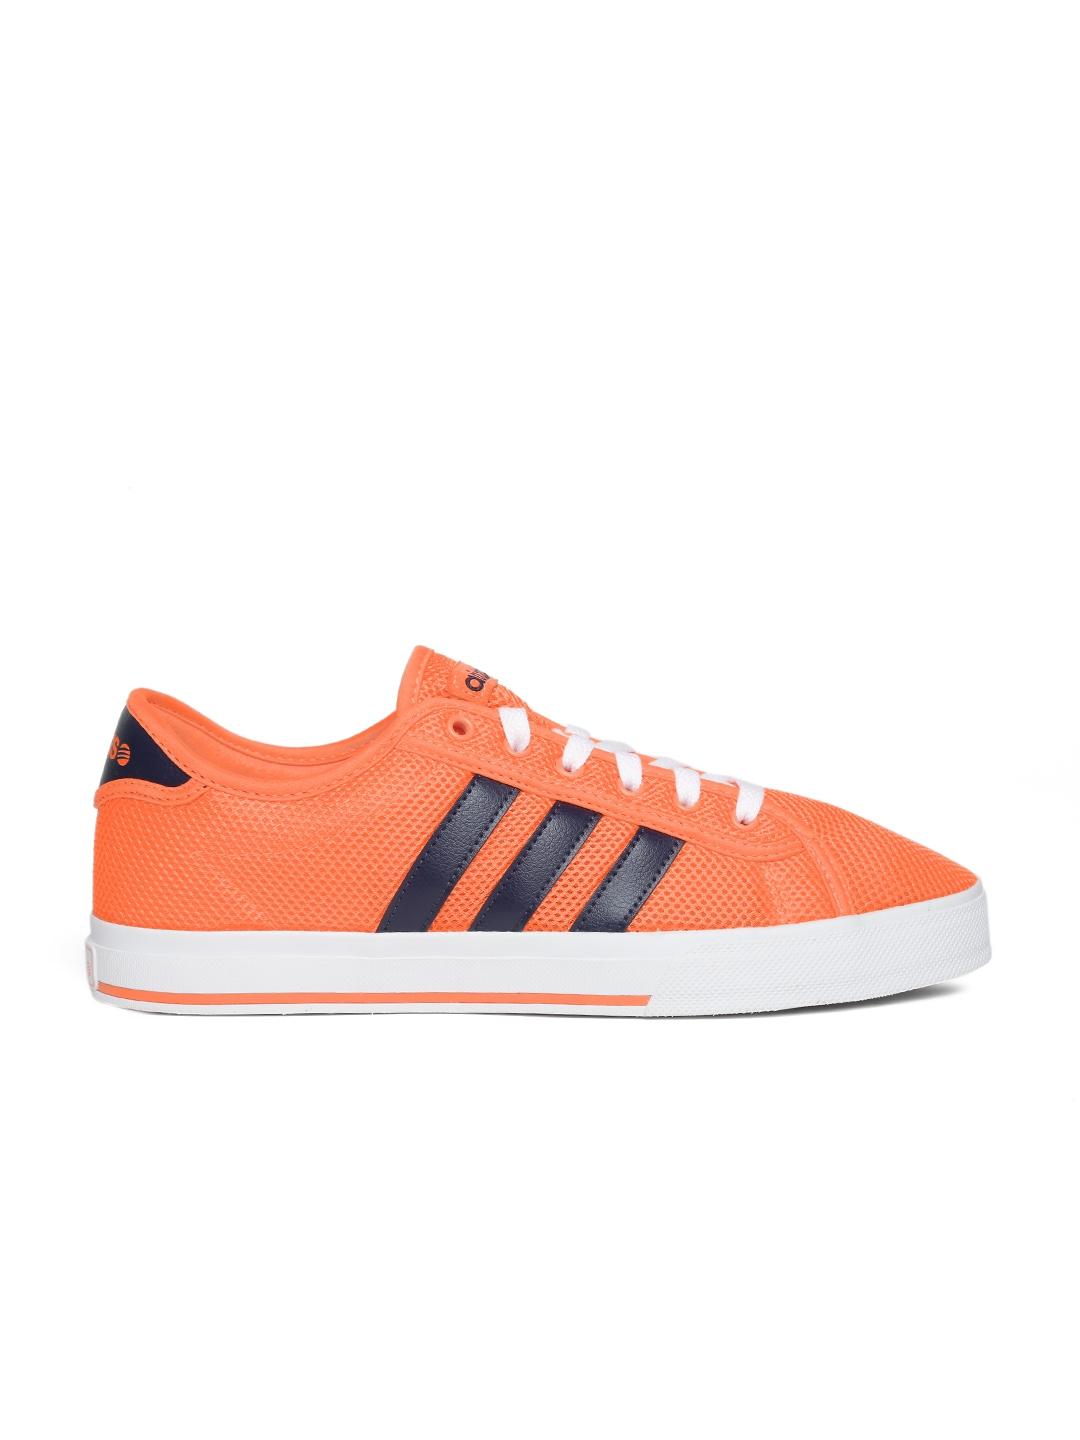 adidas neo bleu orange